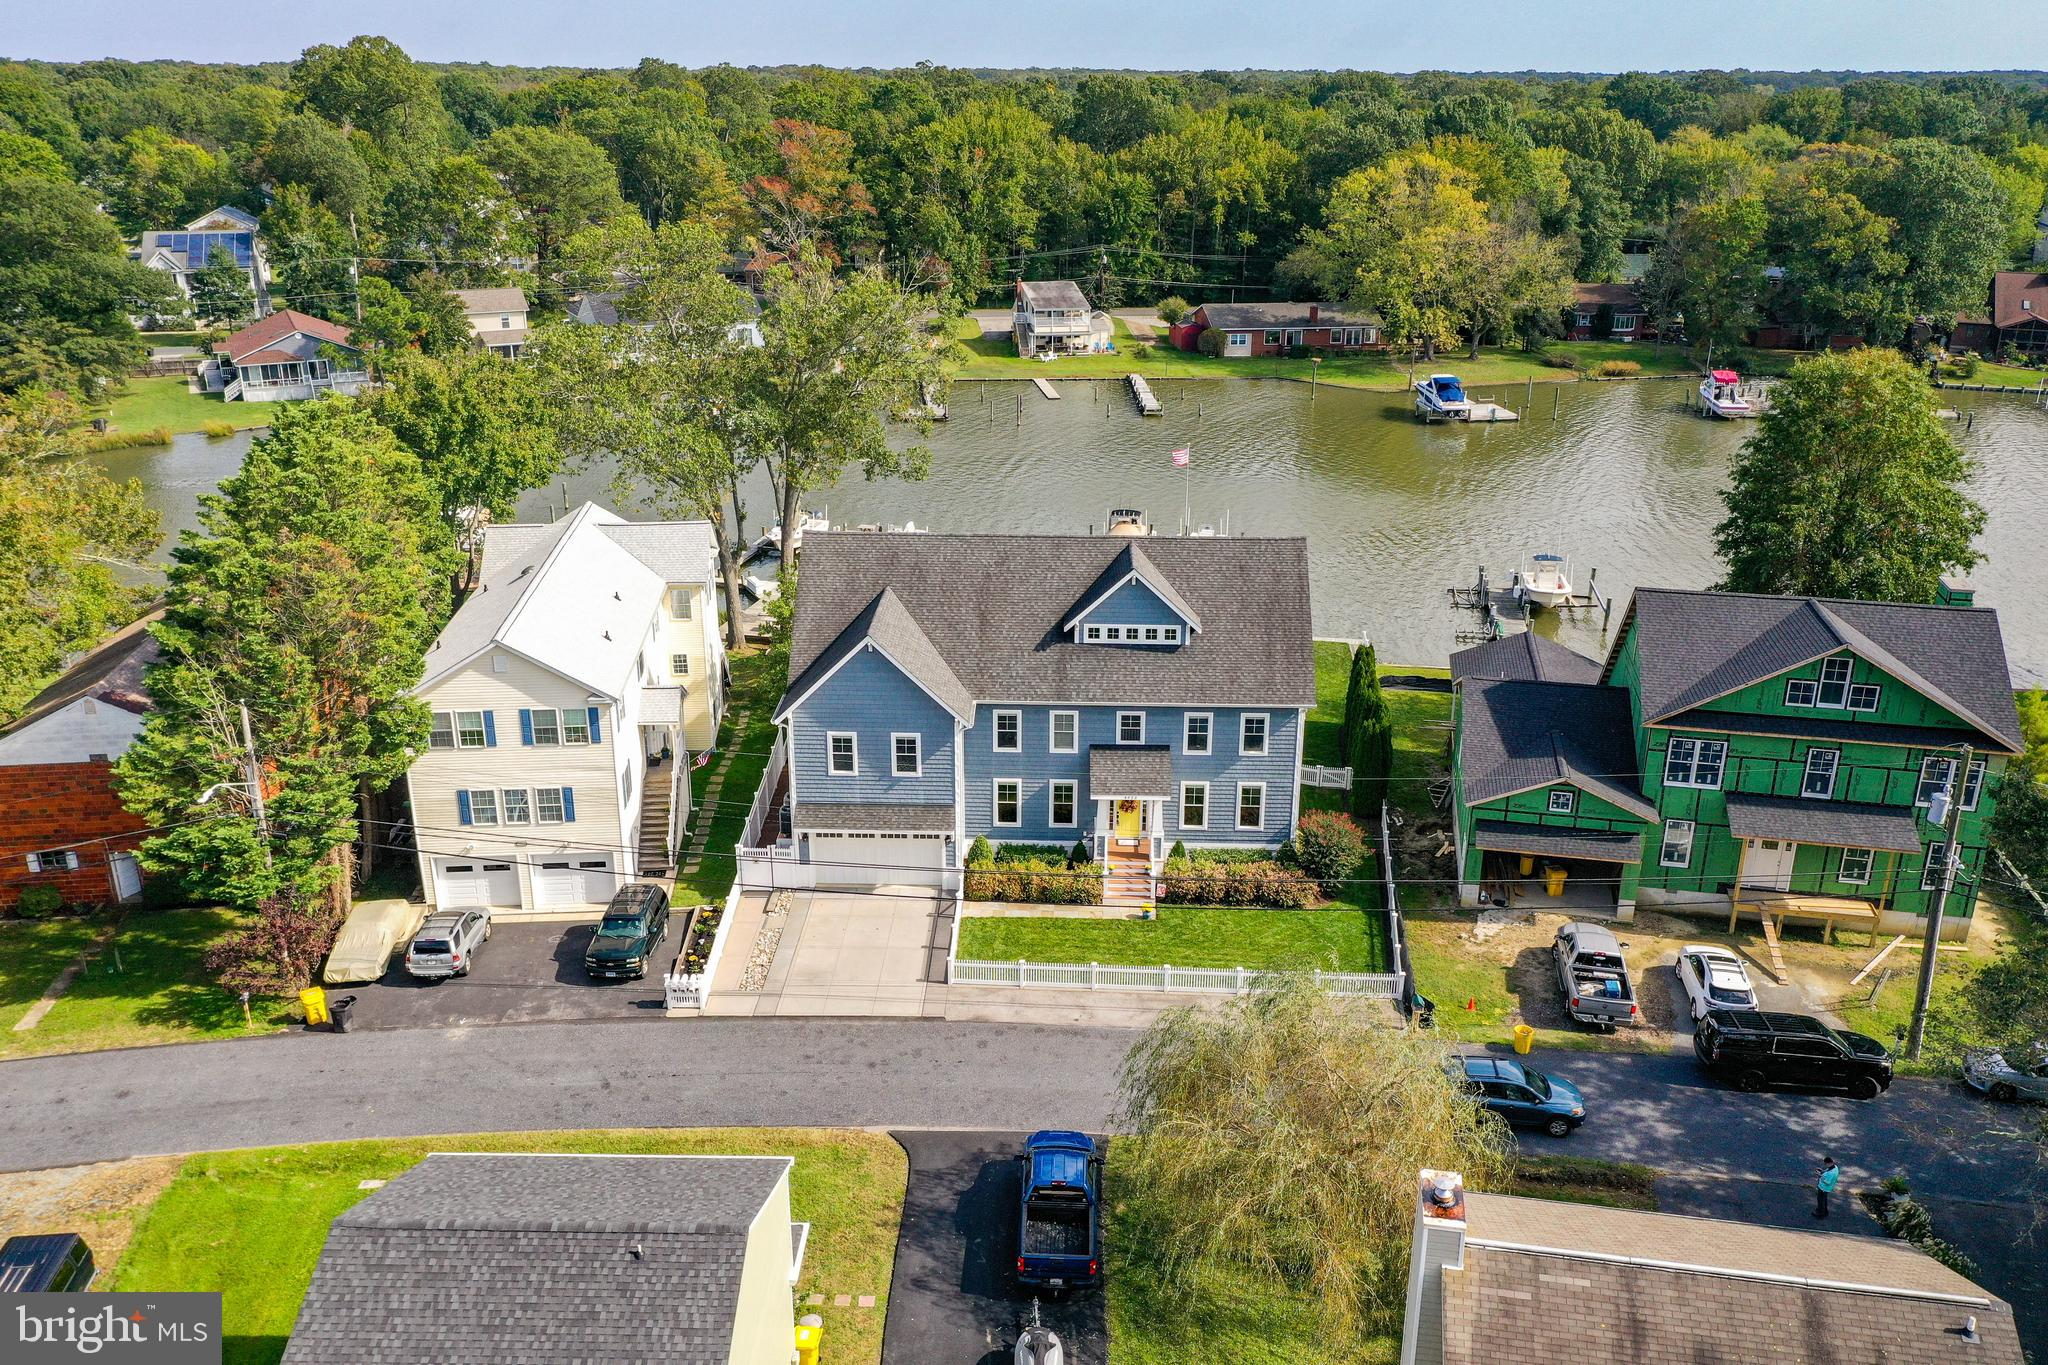 Stunning custom-built waterfront home!  Pride of ownership is easily seen in the upgraded materials and finishes that have been selected for this home, both inside and out. 4 bedrooms, 4 and half bathrooms!  It's a vacation everyday in this amply spaced home with three levels of living and recreation!  Spacious and open with tall ceilings on every level, 5 inch maple hardwoods, upper level laundry room, granite counters, SS appliances, double ovens, gas cooktop, storage closets aplenty throughout the home -and a separate exterior entrance on the waterside with tile floors and a full bathroom ...perfect for cleaning up after a long day out on the water.  Work from home with ease in the large home office located on the main level.  Owner's Suite boasts a grand bedroom en suite complete with walk-in closets, soaking tub, dual vanity sinks, a sitting area, bonus room currently being used as a workout space -and a private balcony to enjoy the peaceful water views in the early mornings or evenings.  Two additional bedrooms, a laundry room, a full bath, and a den/LR area are also found on the second level.  Better than a basement, the third level is fully equipped with a fourth bedroom, another full bath, extra large family room overlooking the water --with yet another balcony!  Wet bar and refrigerator...this space is an entertainers dream!  Windows galore!  Sunlight and outside views are your everyday decor.   Outside, the property sits along 100+ feet of water frontage with a spacious plush green lawn.  Additional exterior features include a white vinyl picket fence, an irrigation system, custom decked pathways, new bulkhead & pier with water, electric, two boat lifts, and a sun deck for relaxing and enjoying those perfect summer evenings -or welcoming home your favorite crabbers from their Bay adventure ...and so much more!!  Average water depth is 3.5 ft. Community amenities include a boat ramp, marina and swimming beach.   Close proximity to area parks, several local